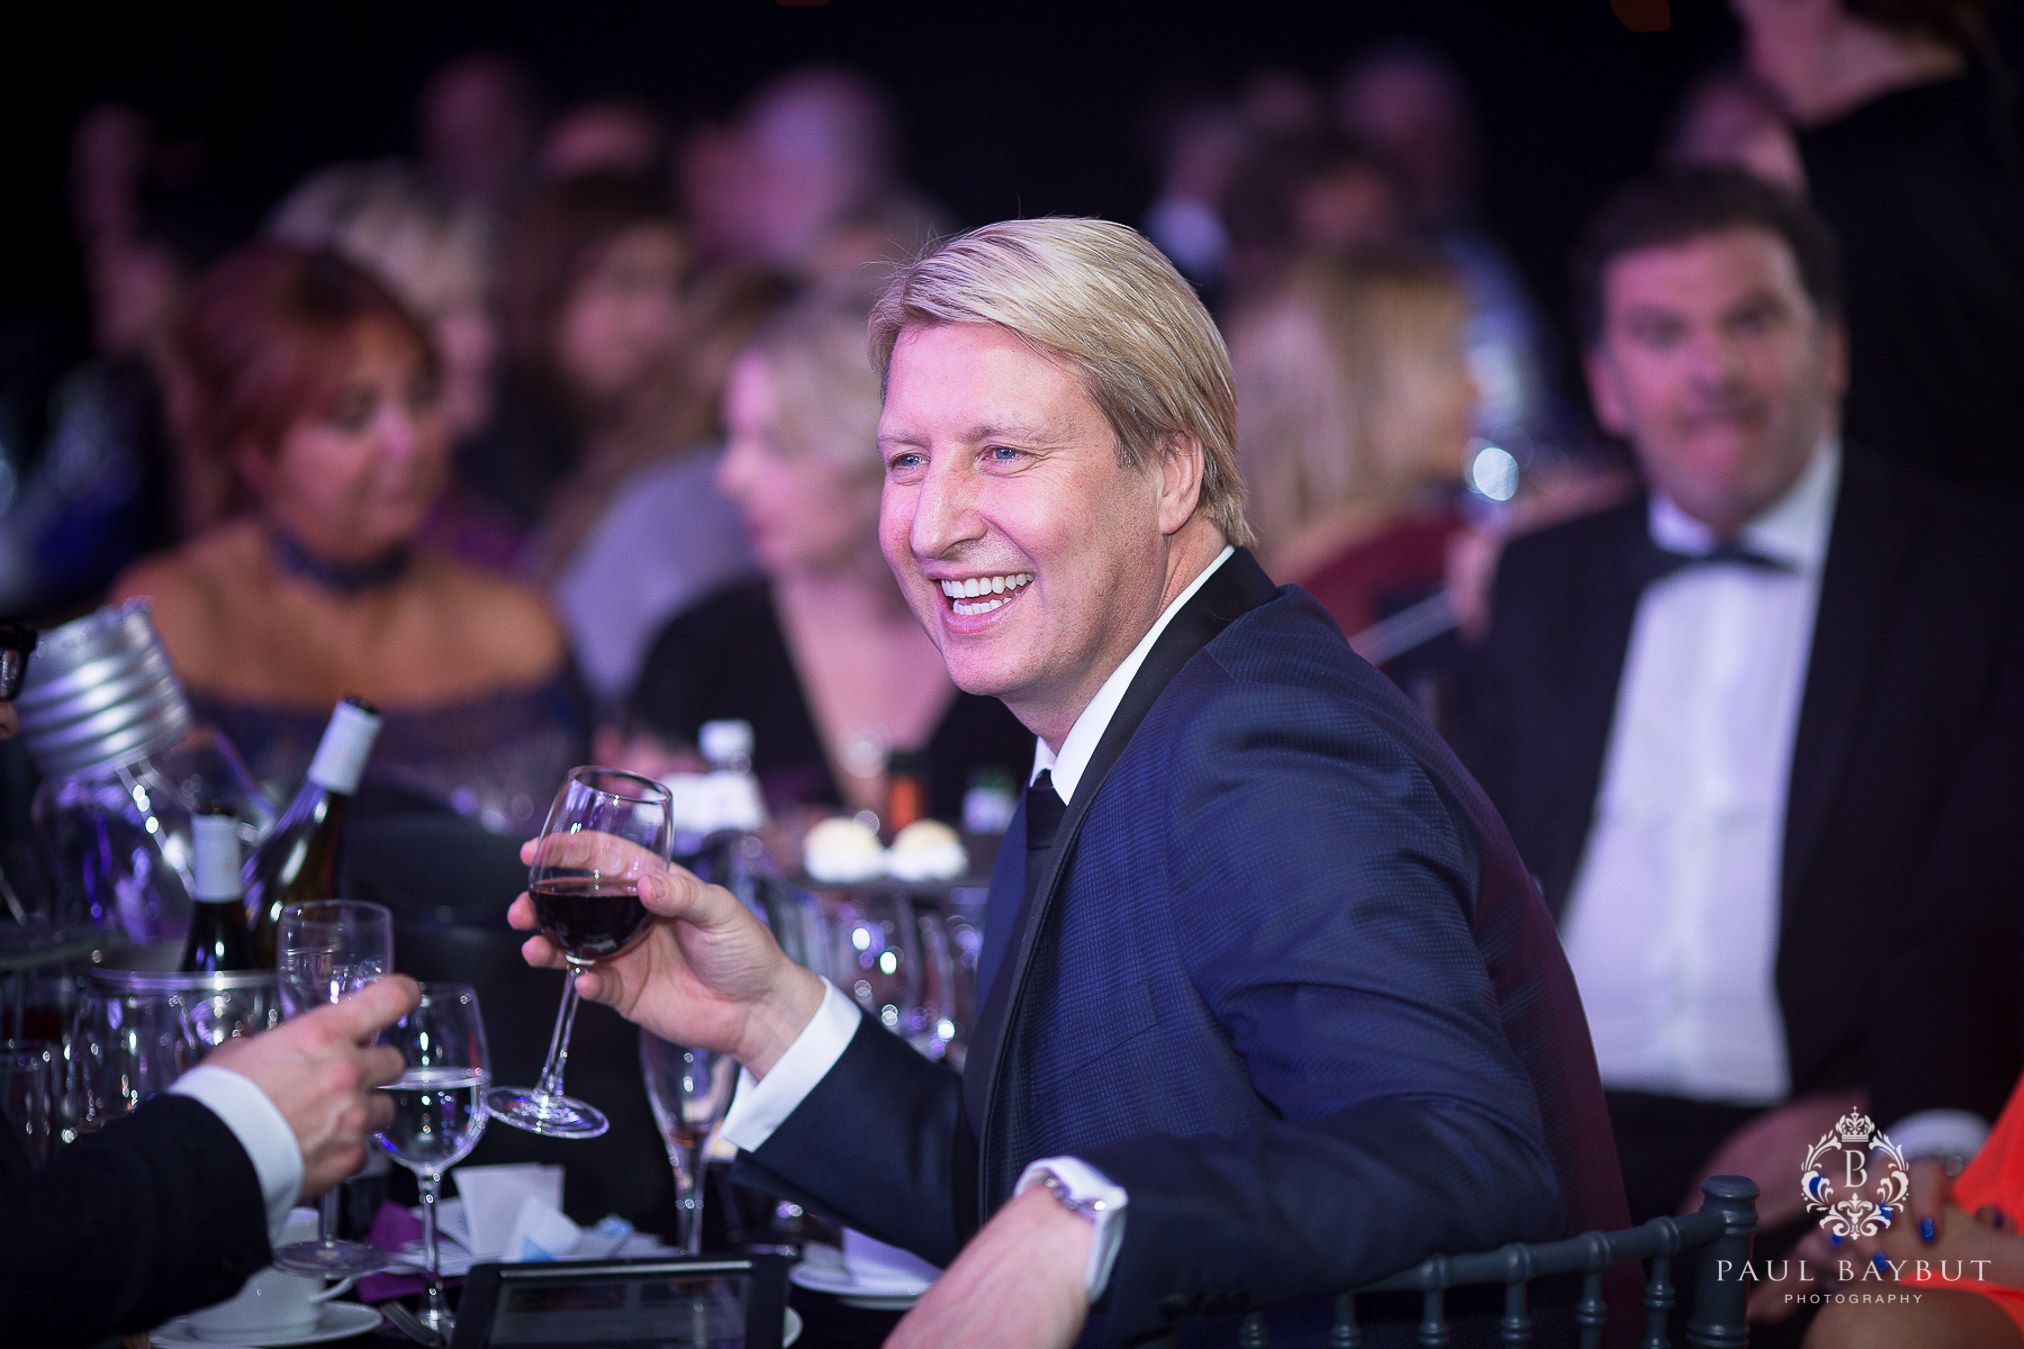 Smiling male guest sat a a table and holding a glass of wine during a charity ball event in Manchester